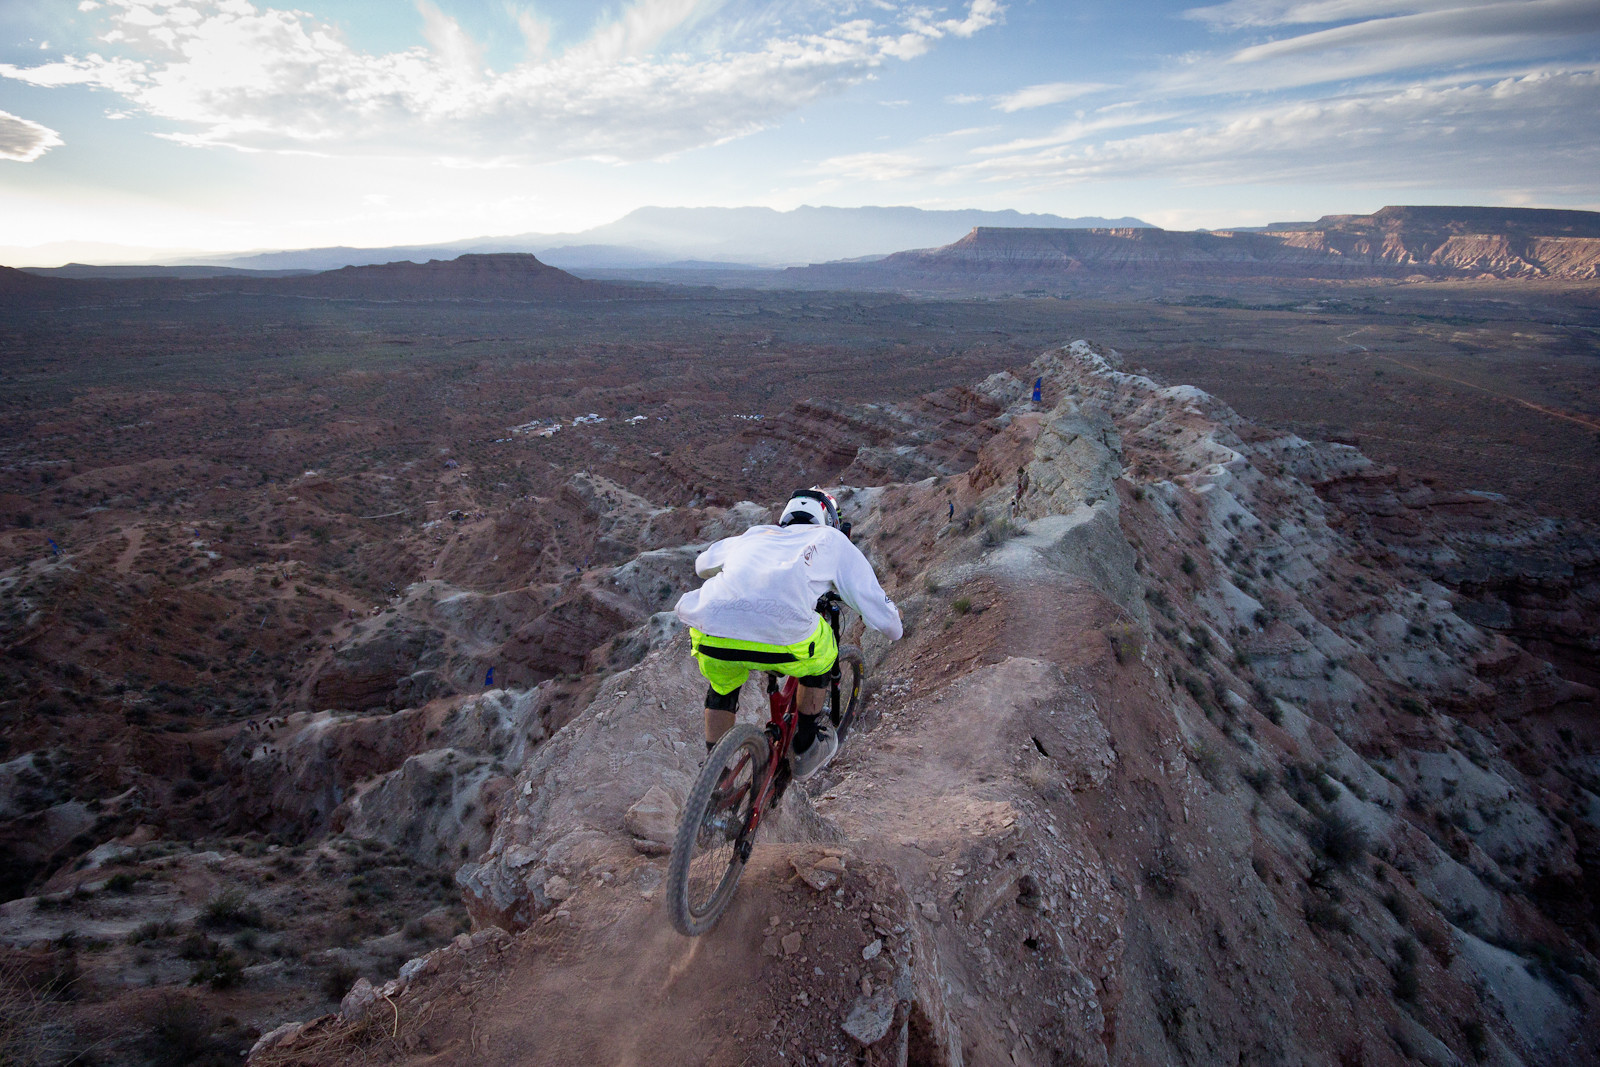 Cam Zink, Red Bull Rampage Knife Edge, 2012 - Cam Zink, Pro Rider Photo Gallery - Mountain Biking Pictures - Vital MTB